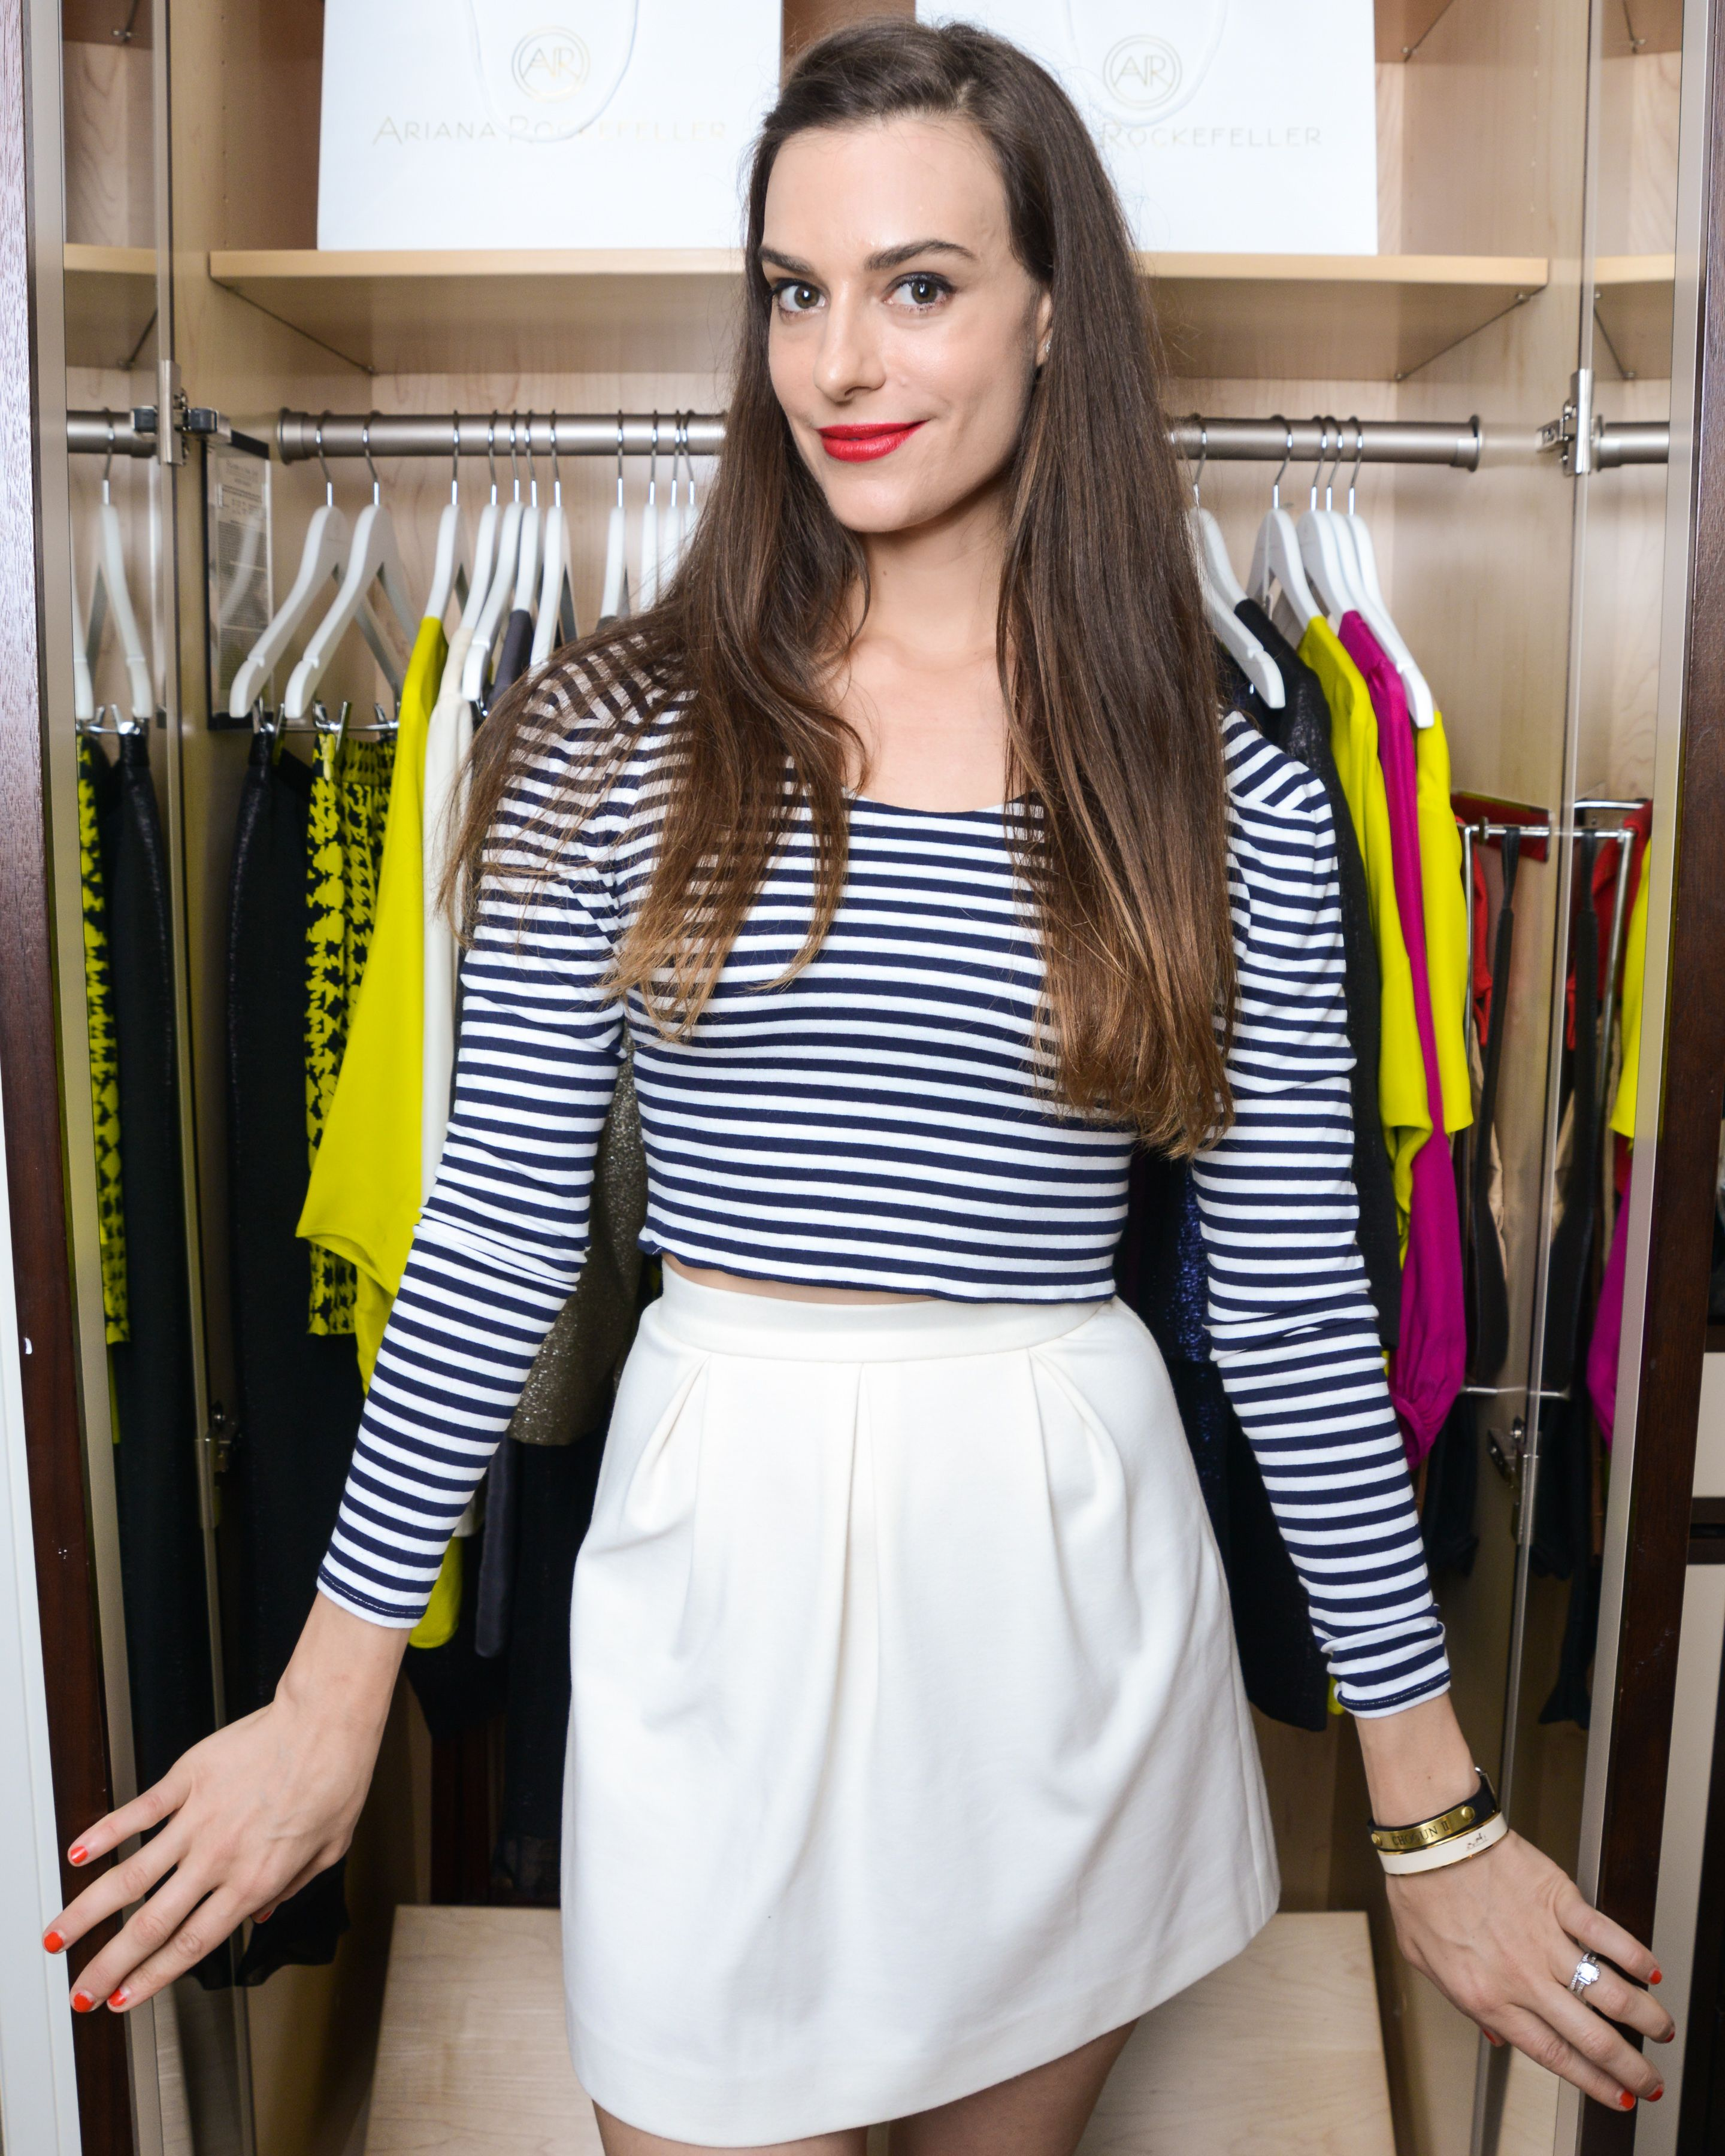 Ariana Rockefeller On Her Spring Collection And Her First Met Ball -